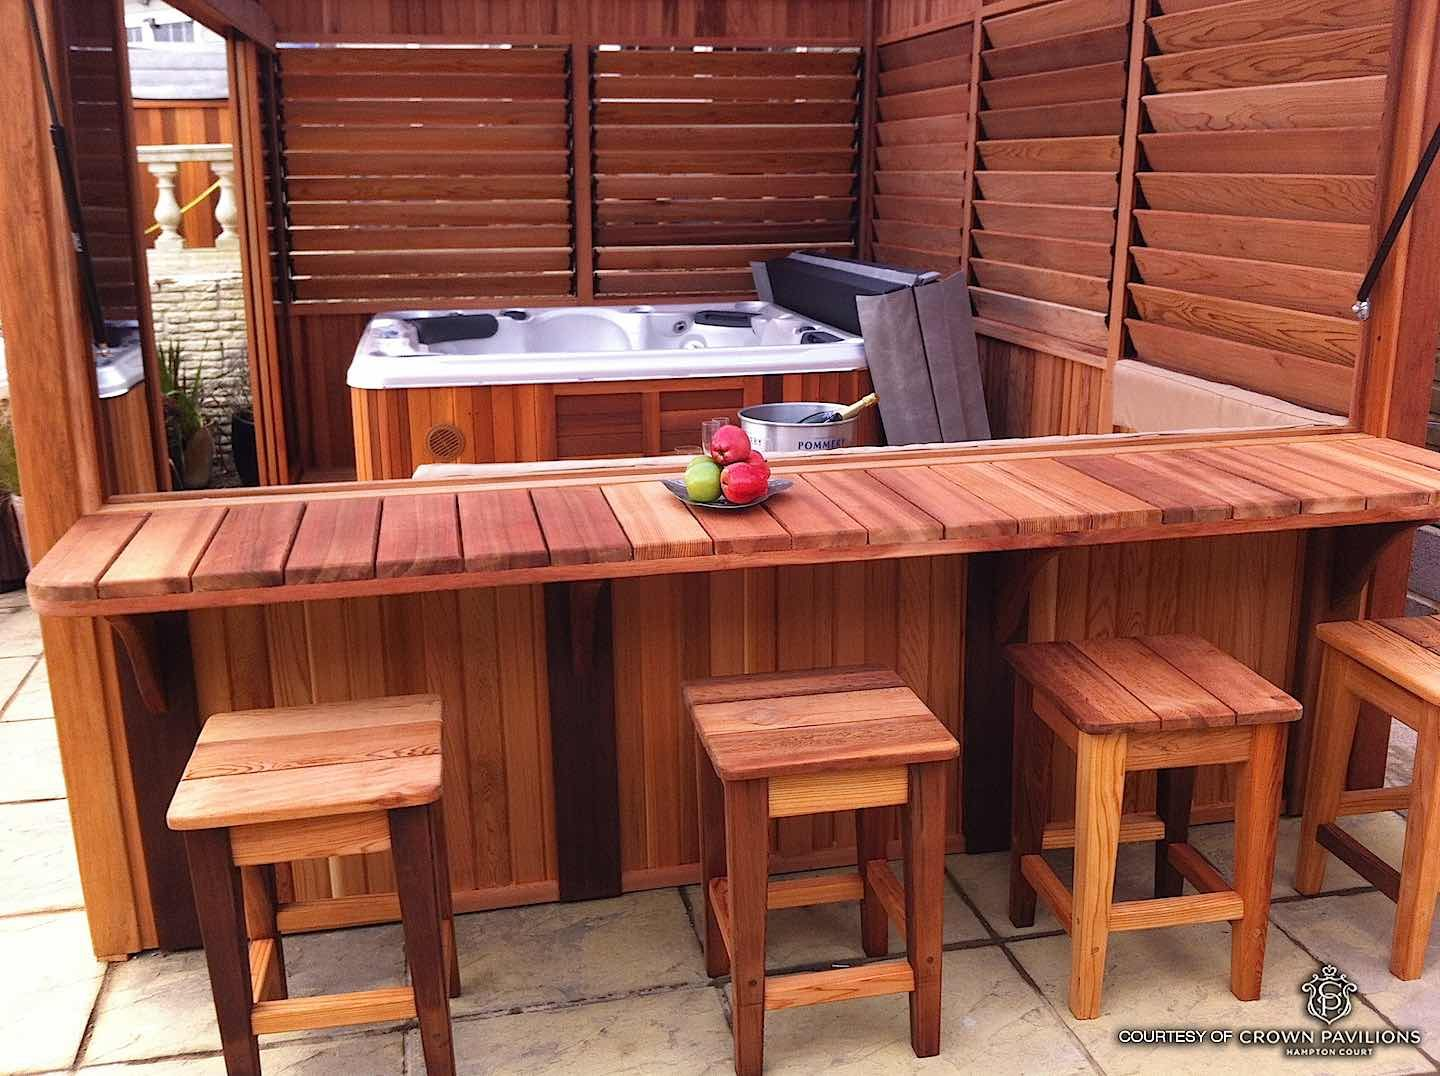 Some Of The Hot Tub X2f Spa Enclosures Built With The Flex Fence Hardware Kit Include A Louvered Cedar Spa Encl Hot Tub Gazebo Hot Tub Patio Hot Tub Outdoor